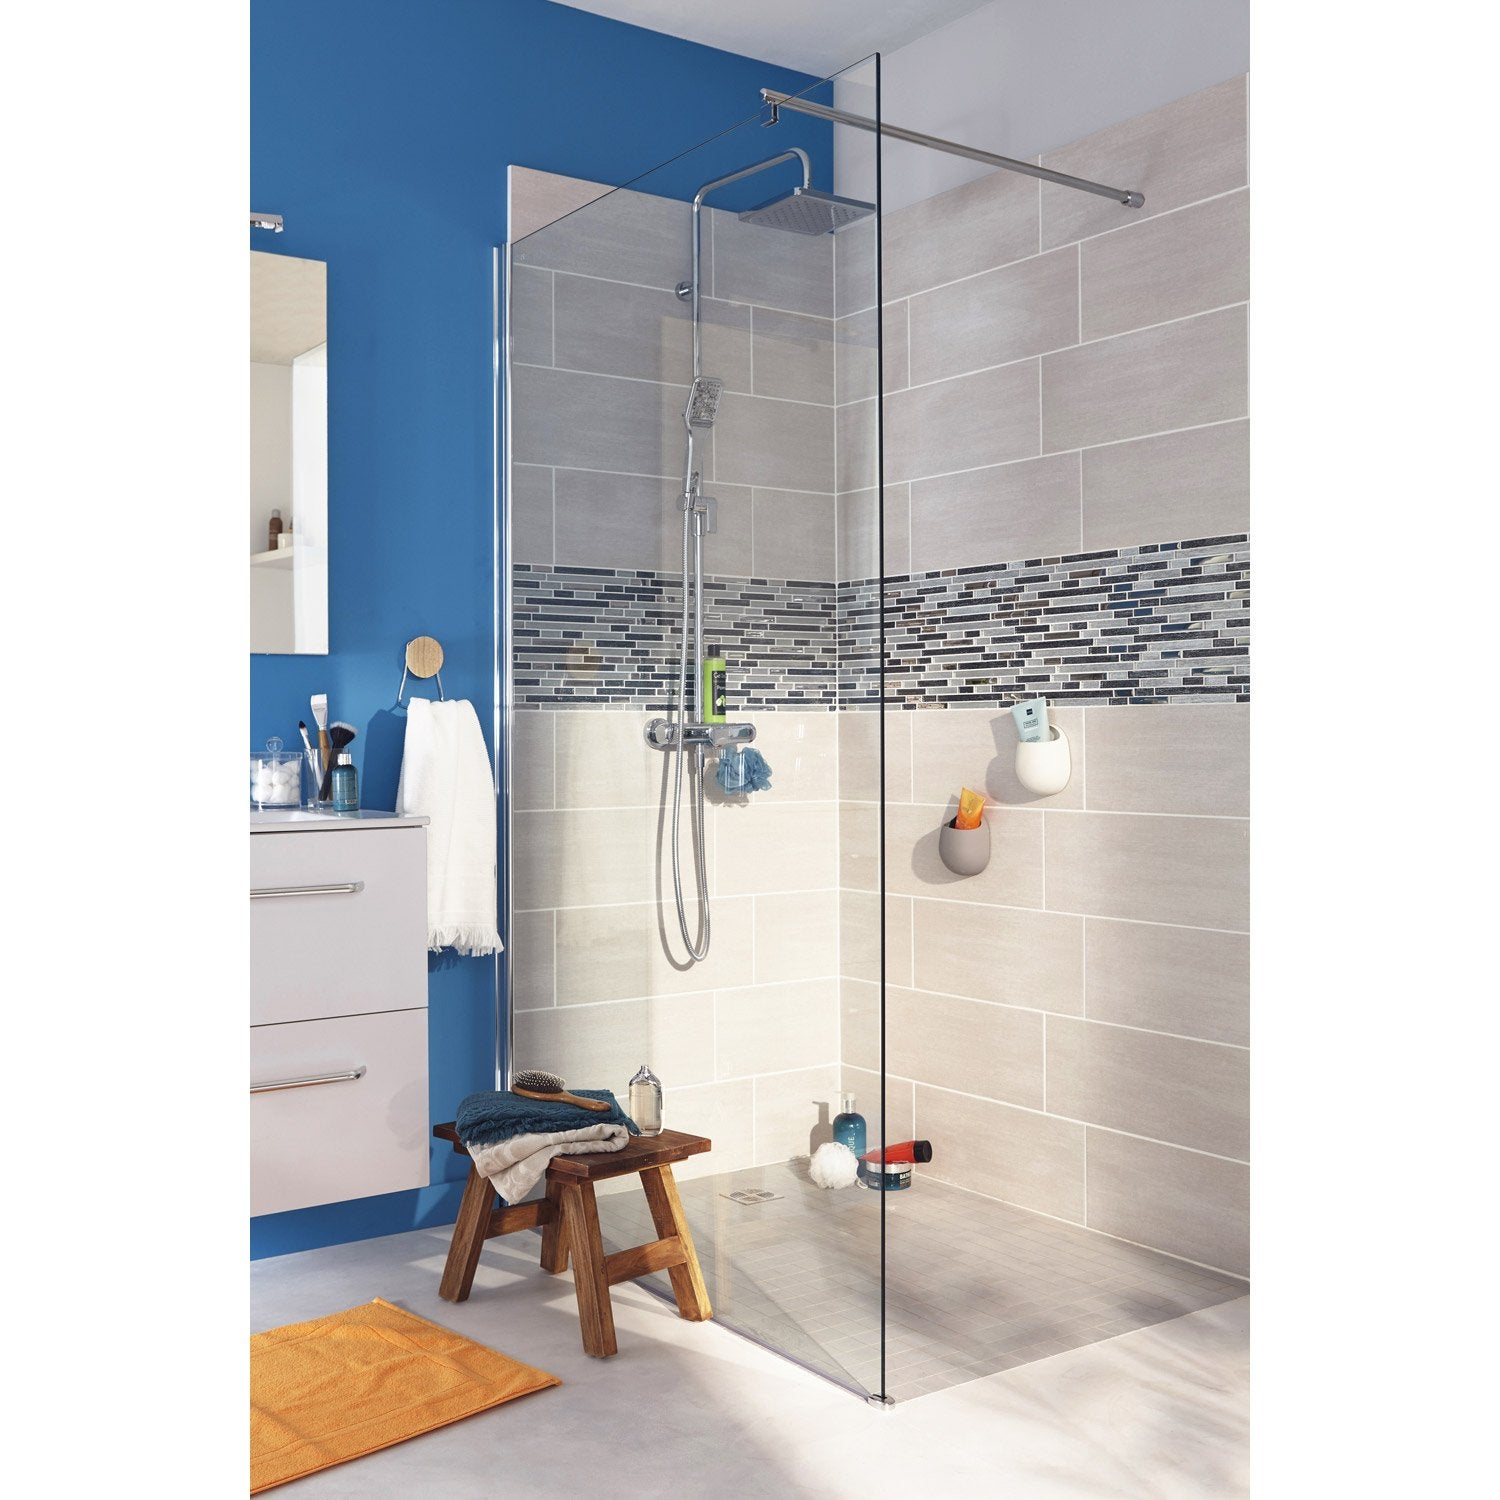 Paroi de douche l 39 italienne cm verre transparent for Photo douche italienne carrelee